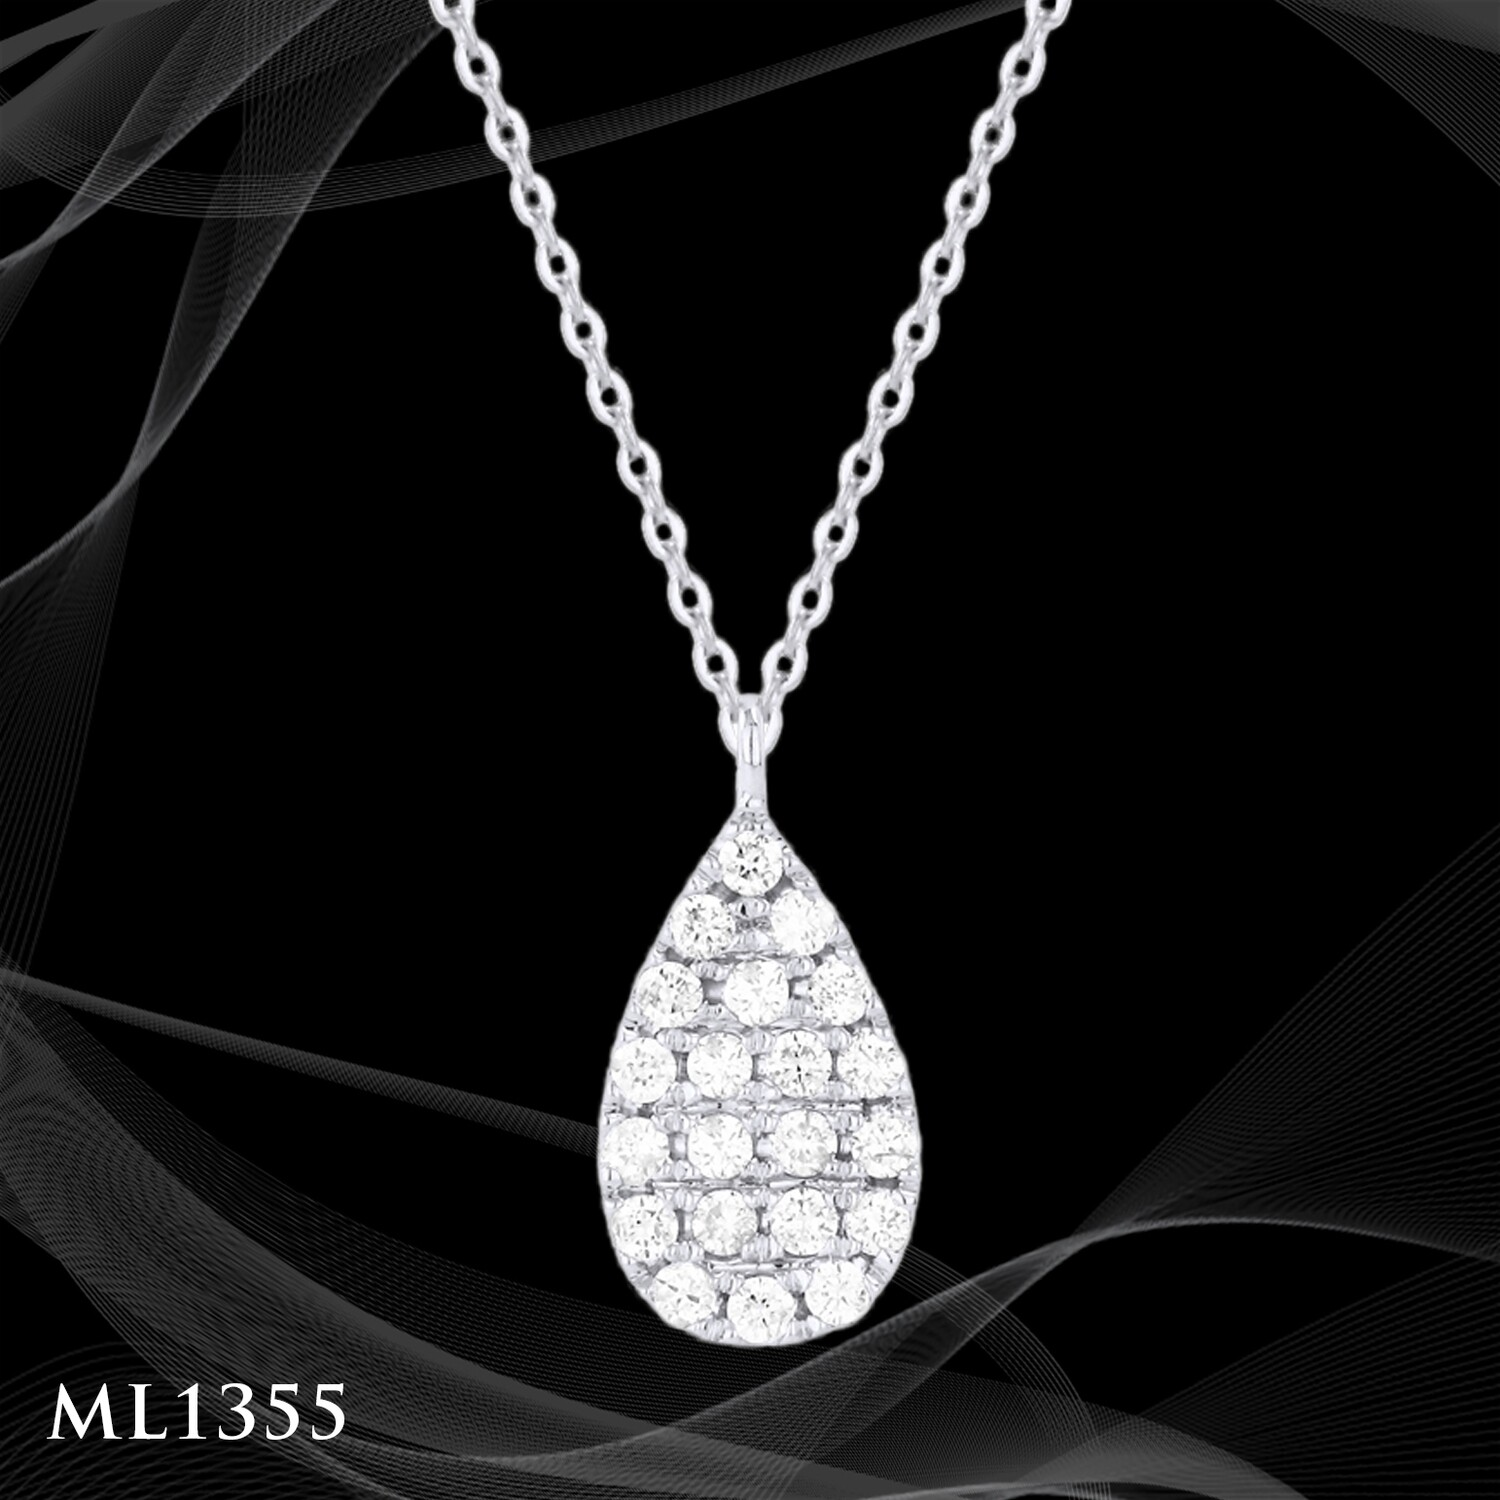 14 Karat White Gold Pear Shape Pave Pendant